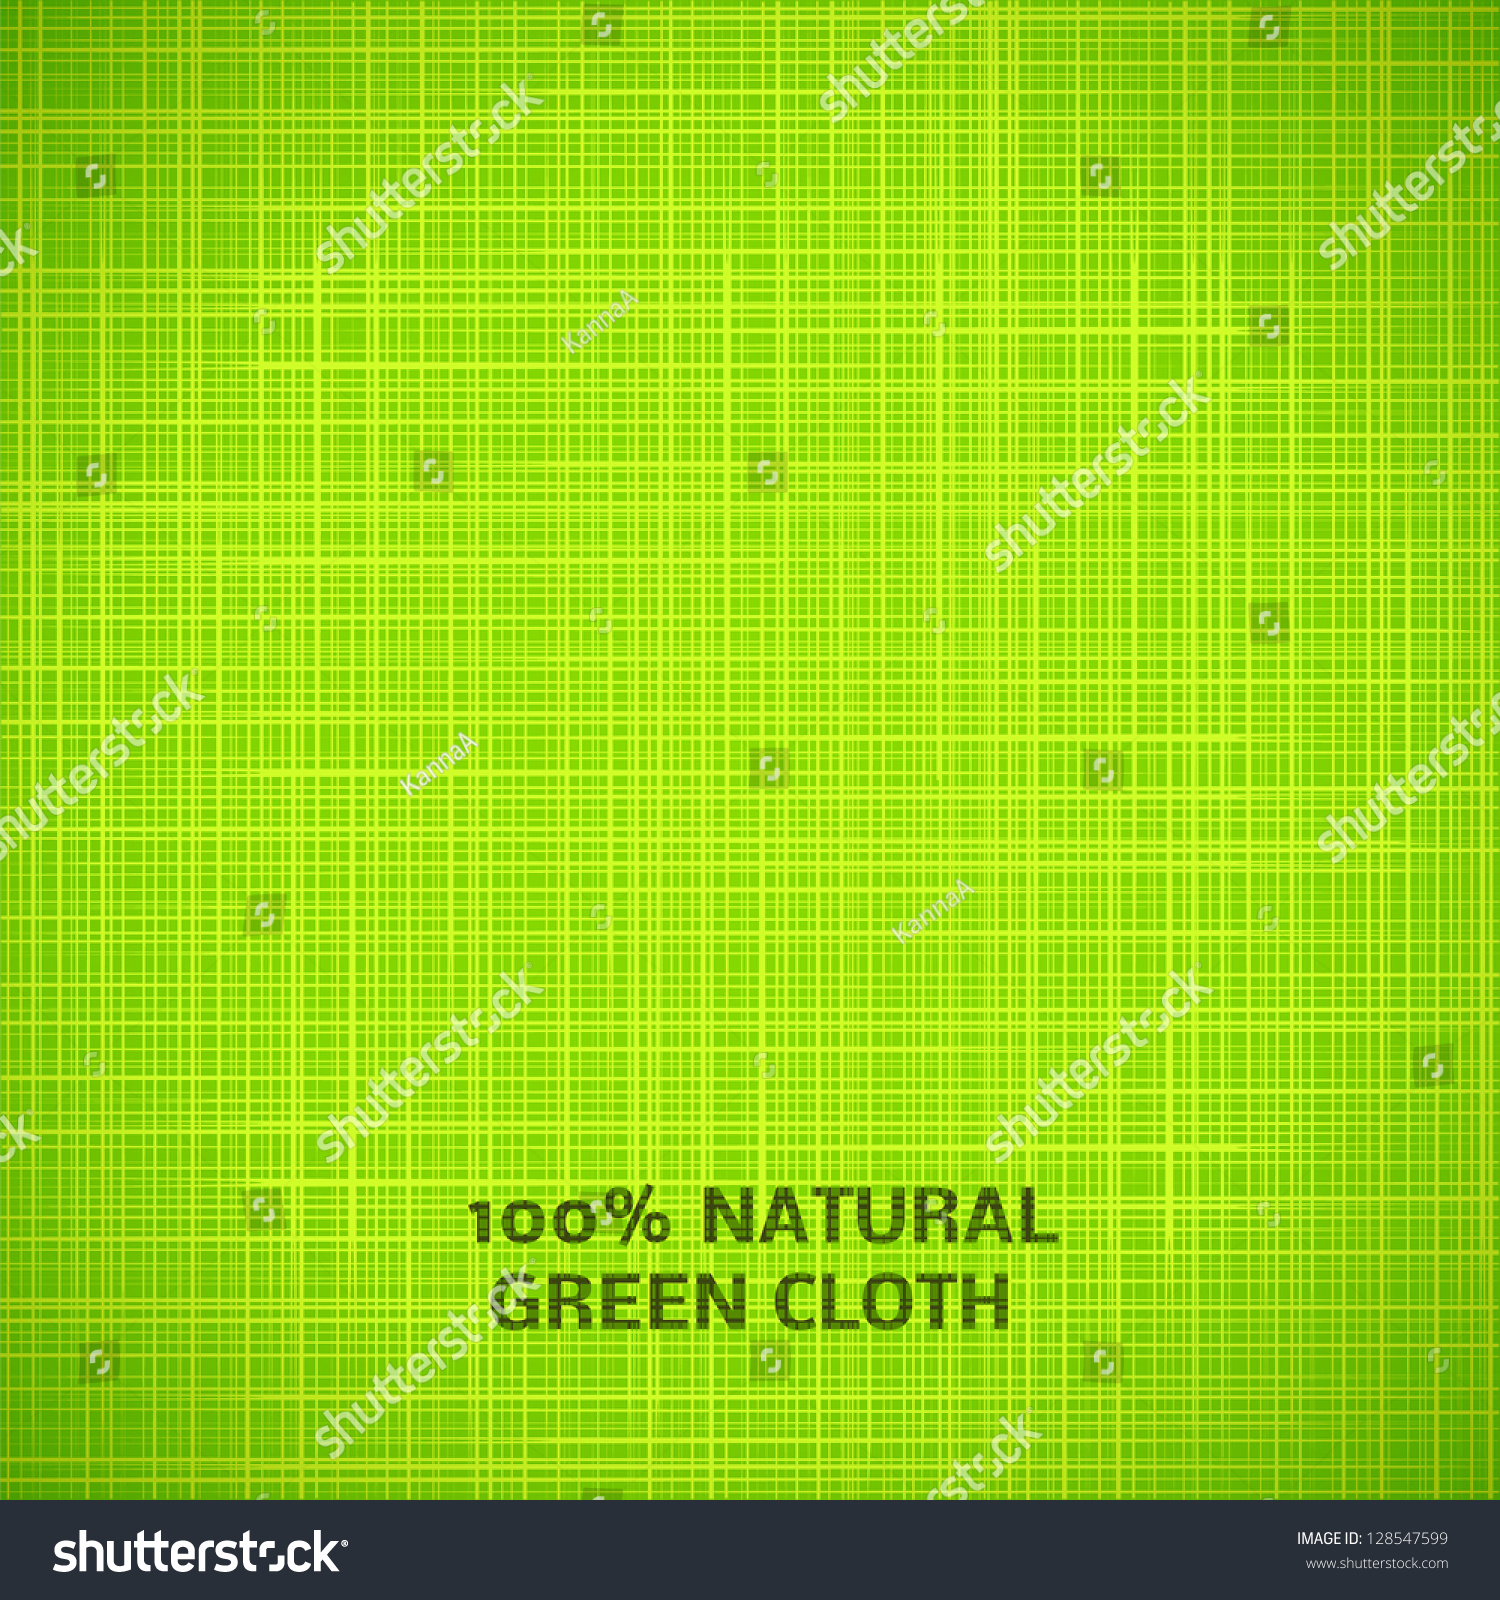 Book Cover Design Nature : Green cloth texture background vector illustration stock